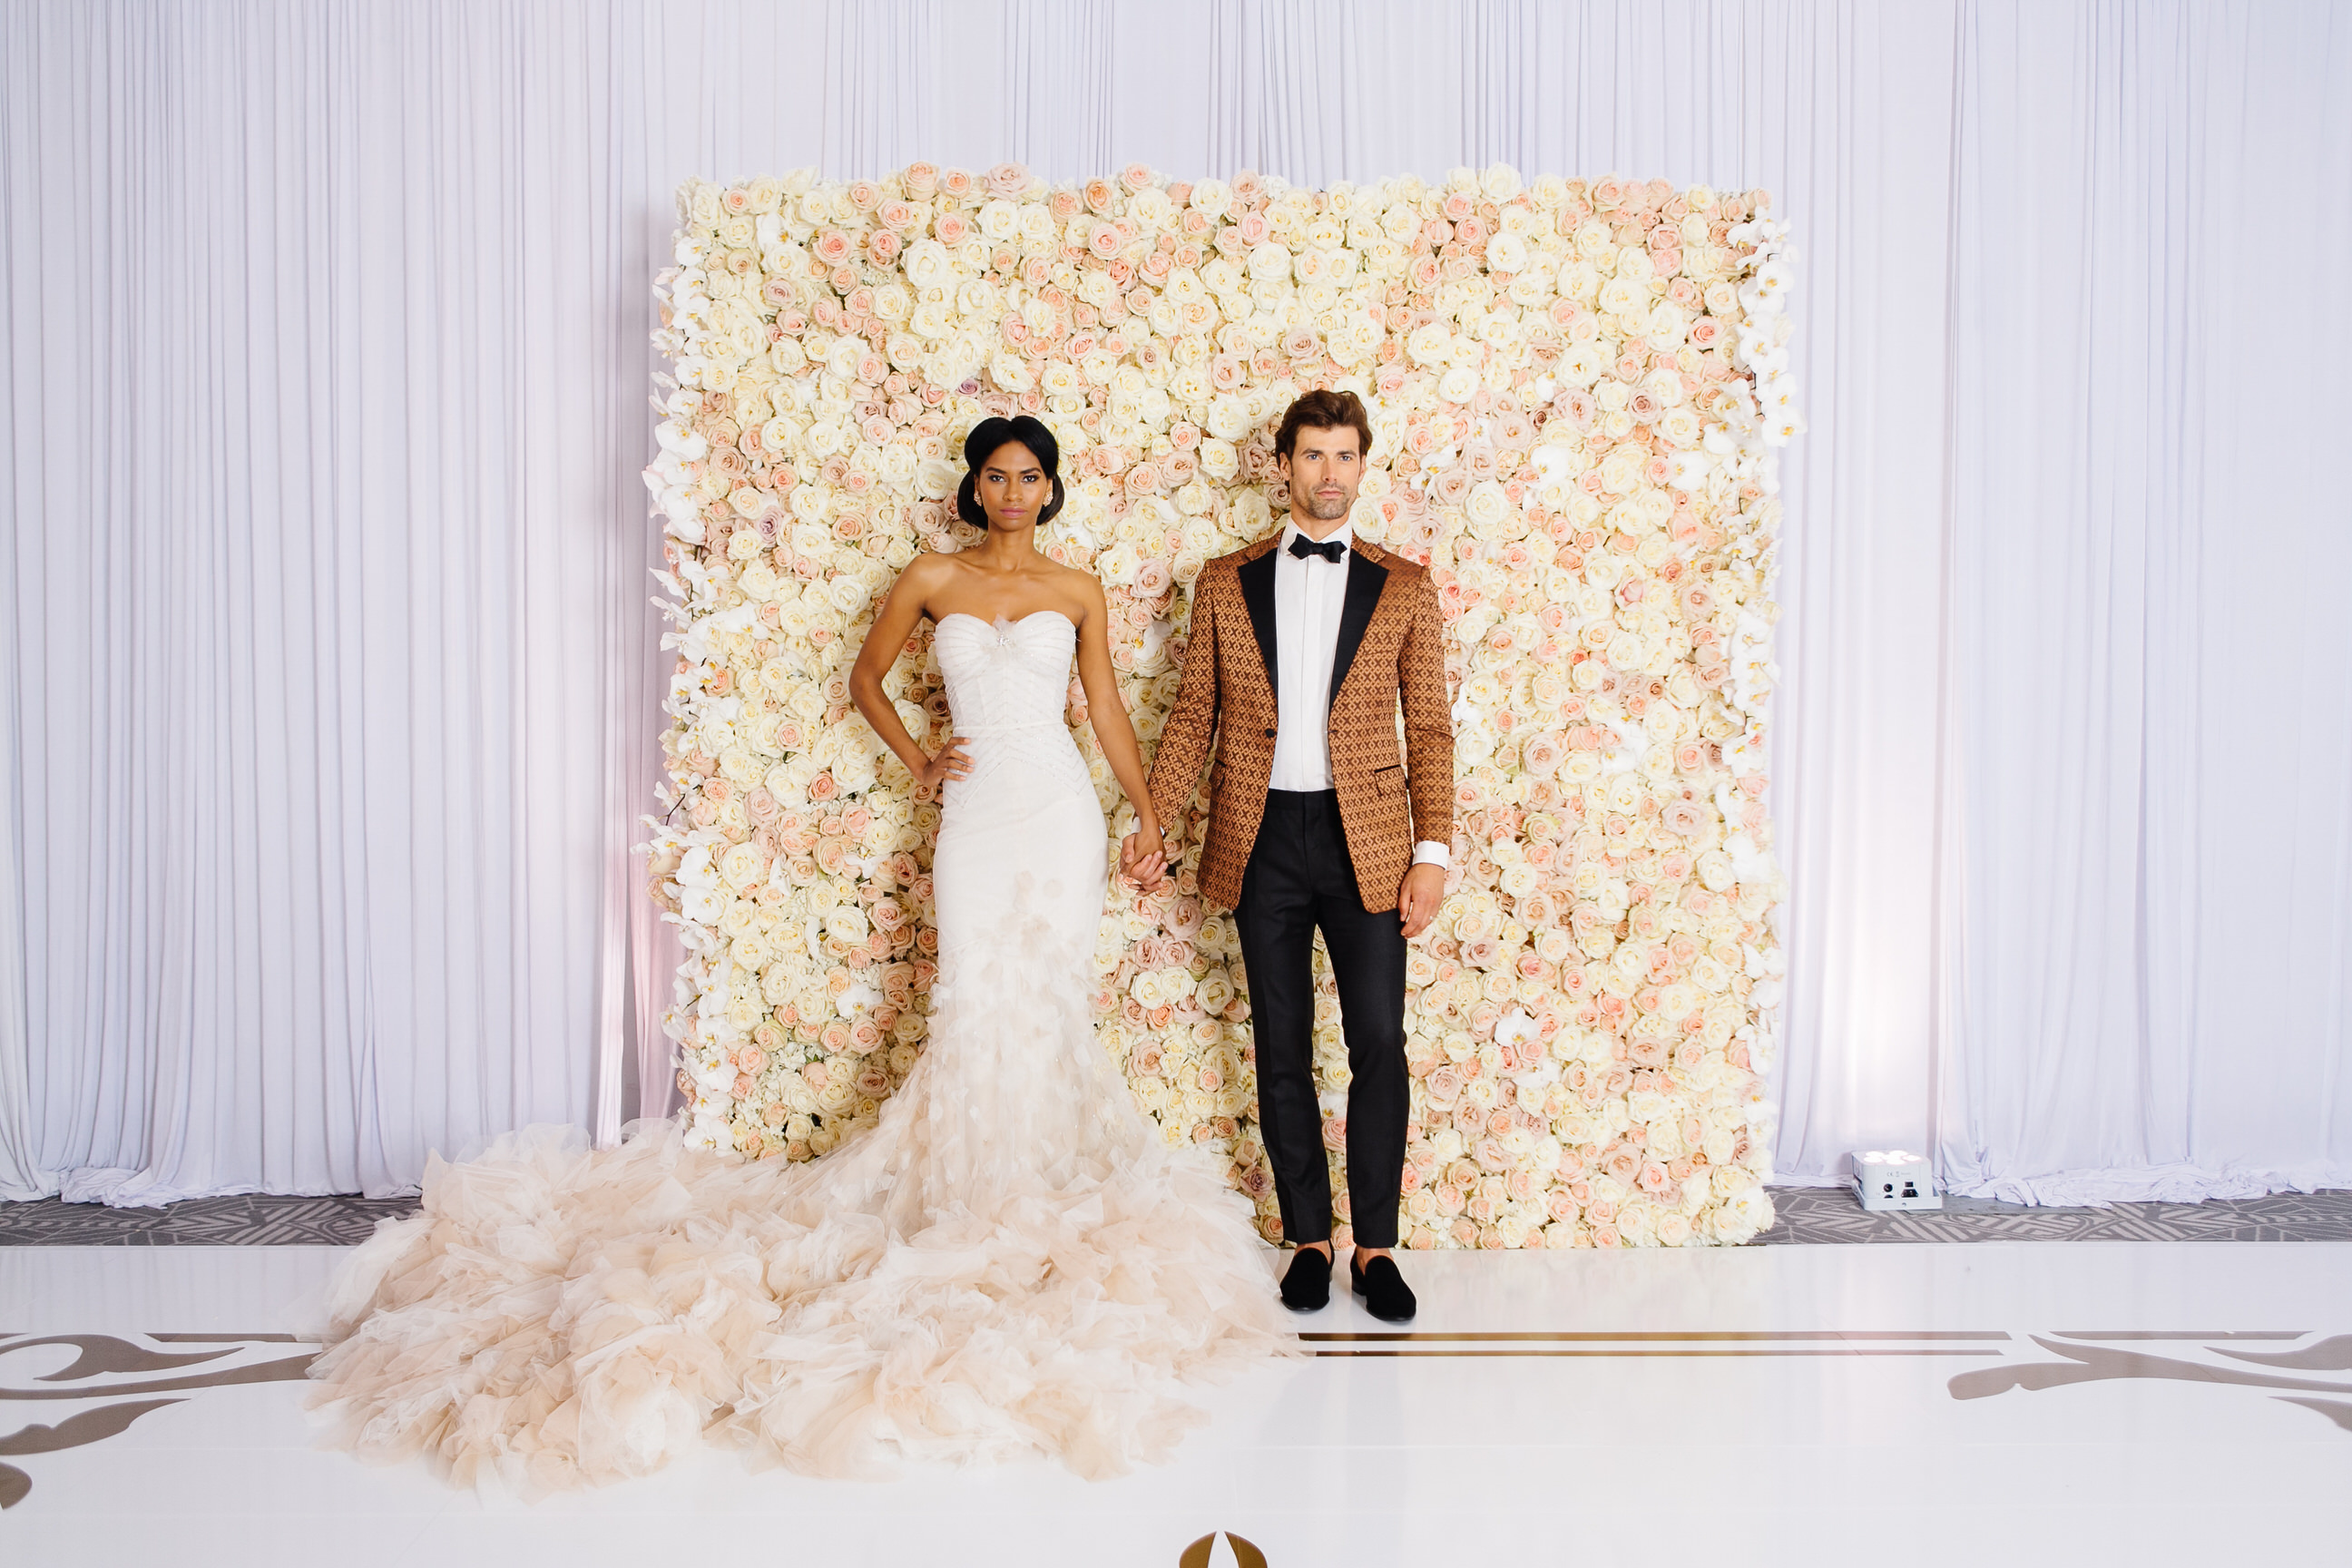 Bride in wedding dress standing with groom in front of flower wall wedding ideas